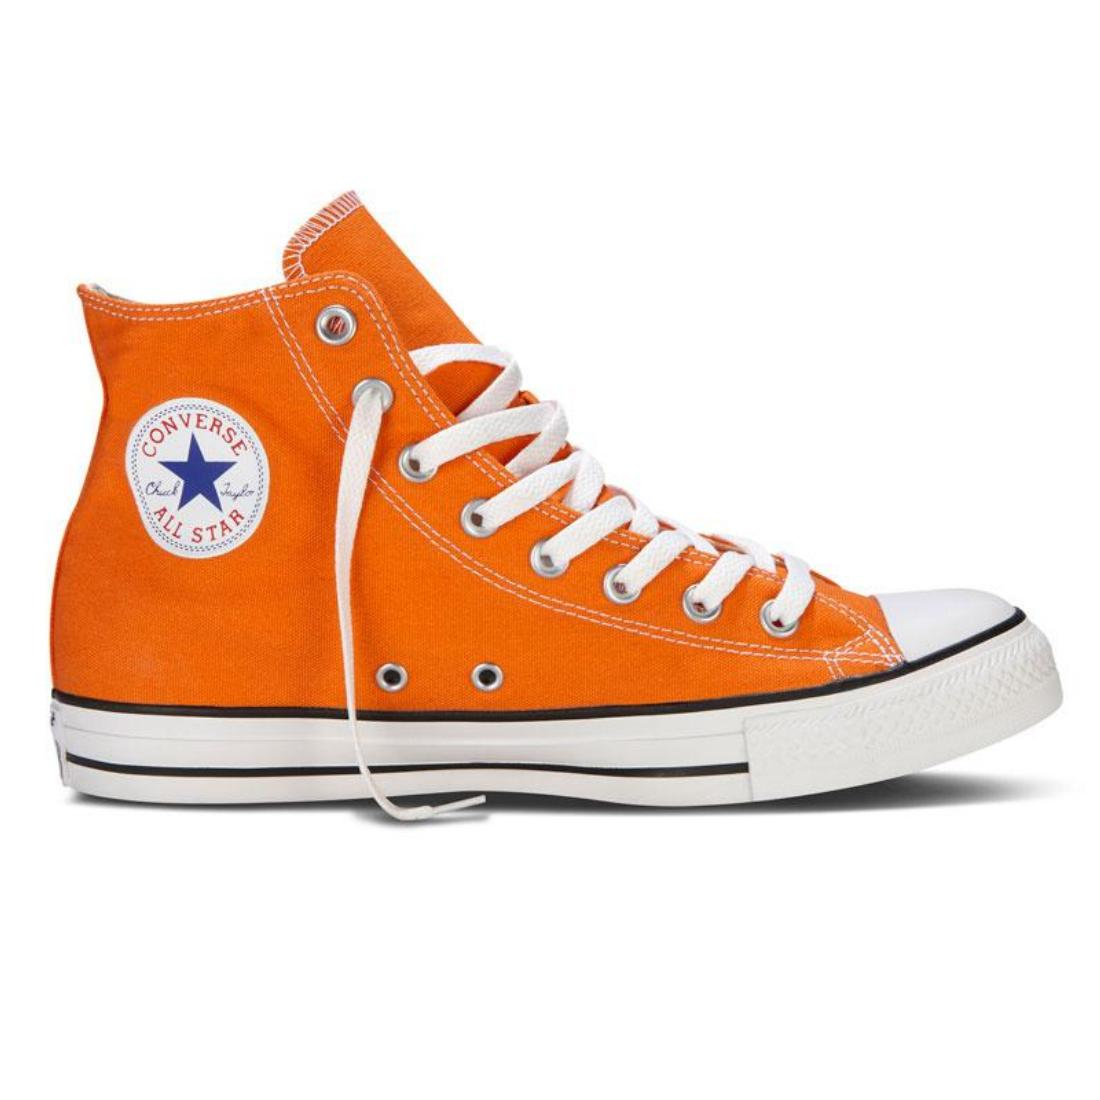 converse chuck taylor all star hi schuhe high top sneaker damen herren ebay. Black Bedroom Furniture Sets. Home Design Ideas